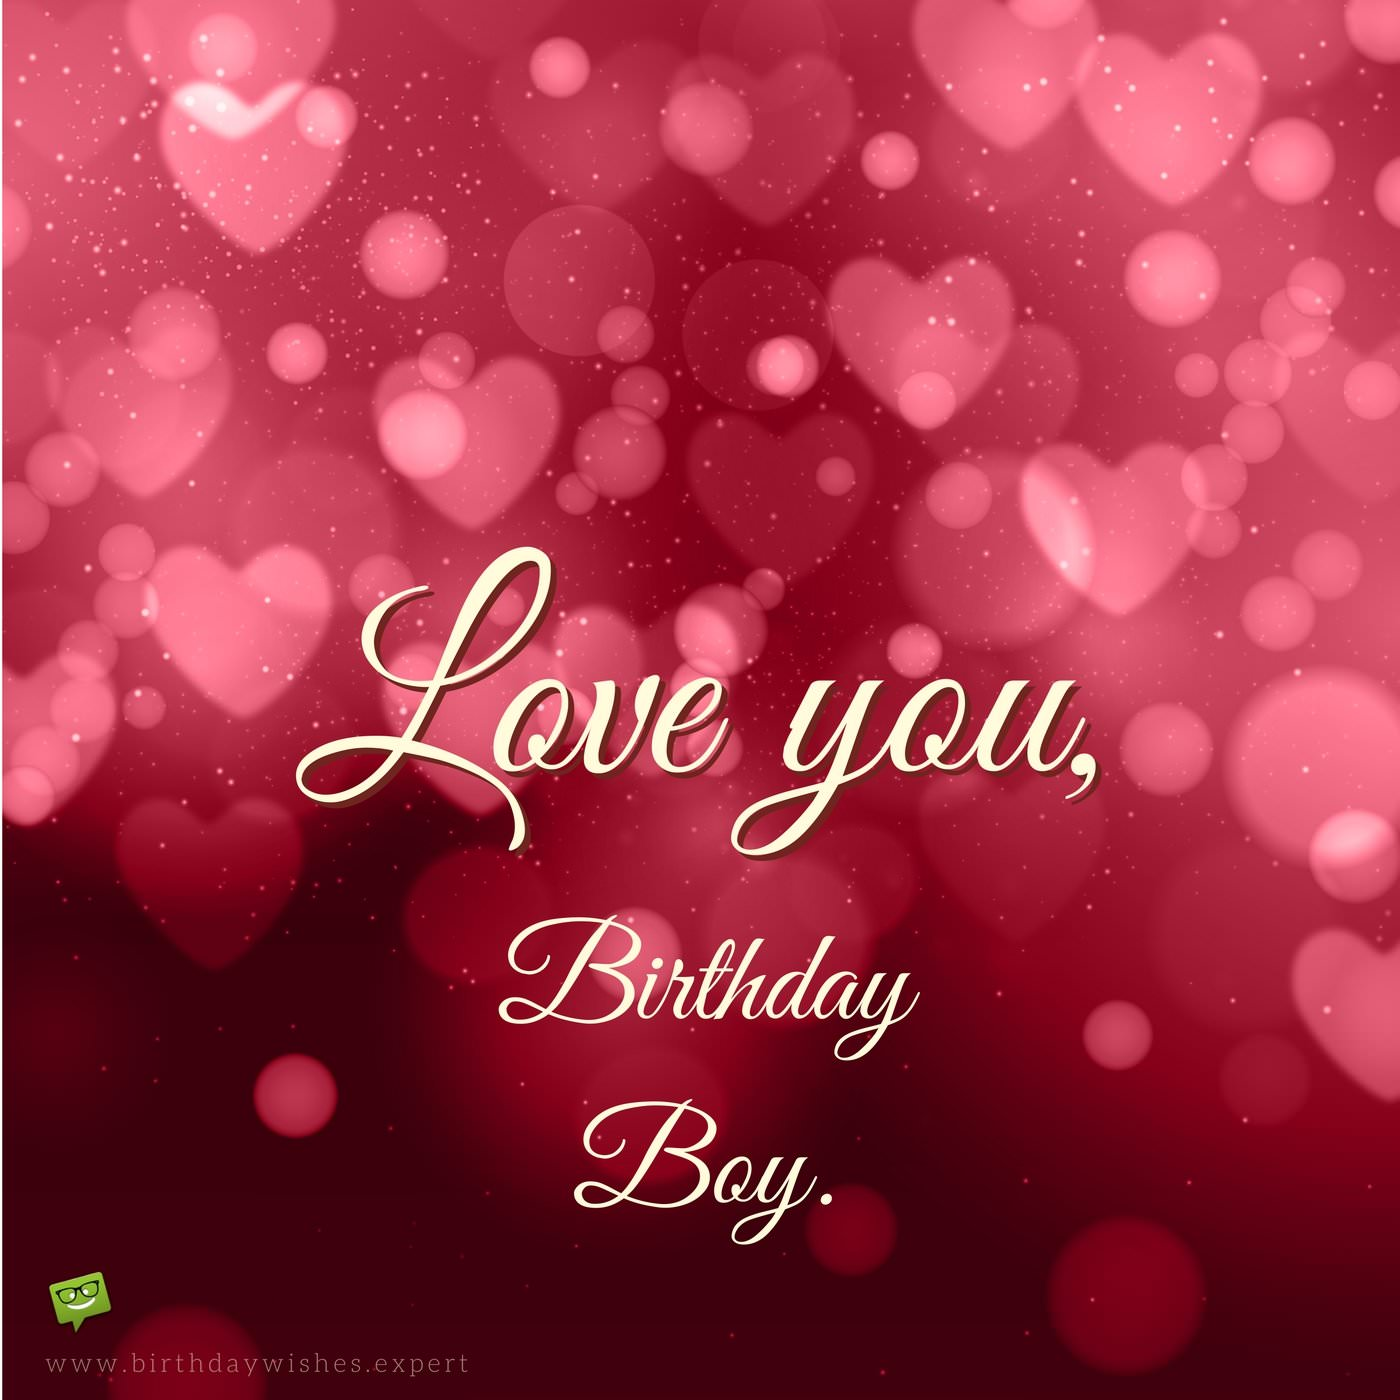 birthday greeting pictures for lover ; Birthday-wish-for-boyfriend-on-background-with-red-hearts